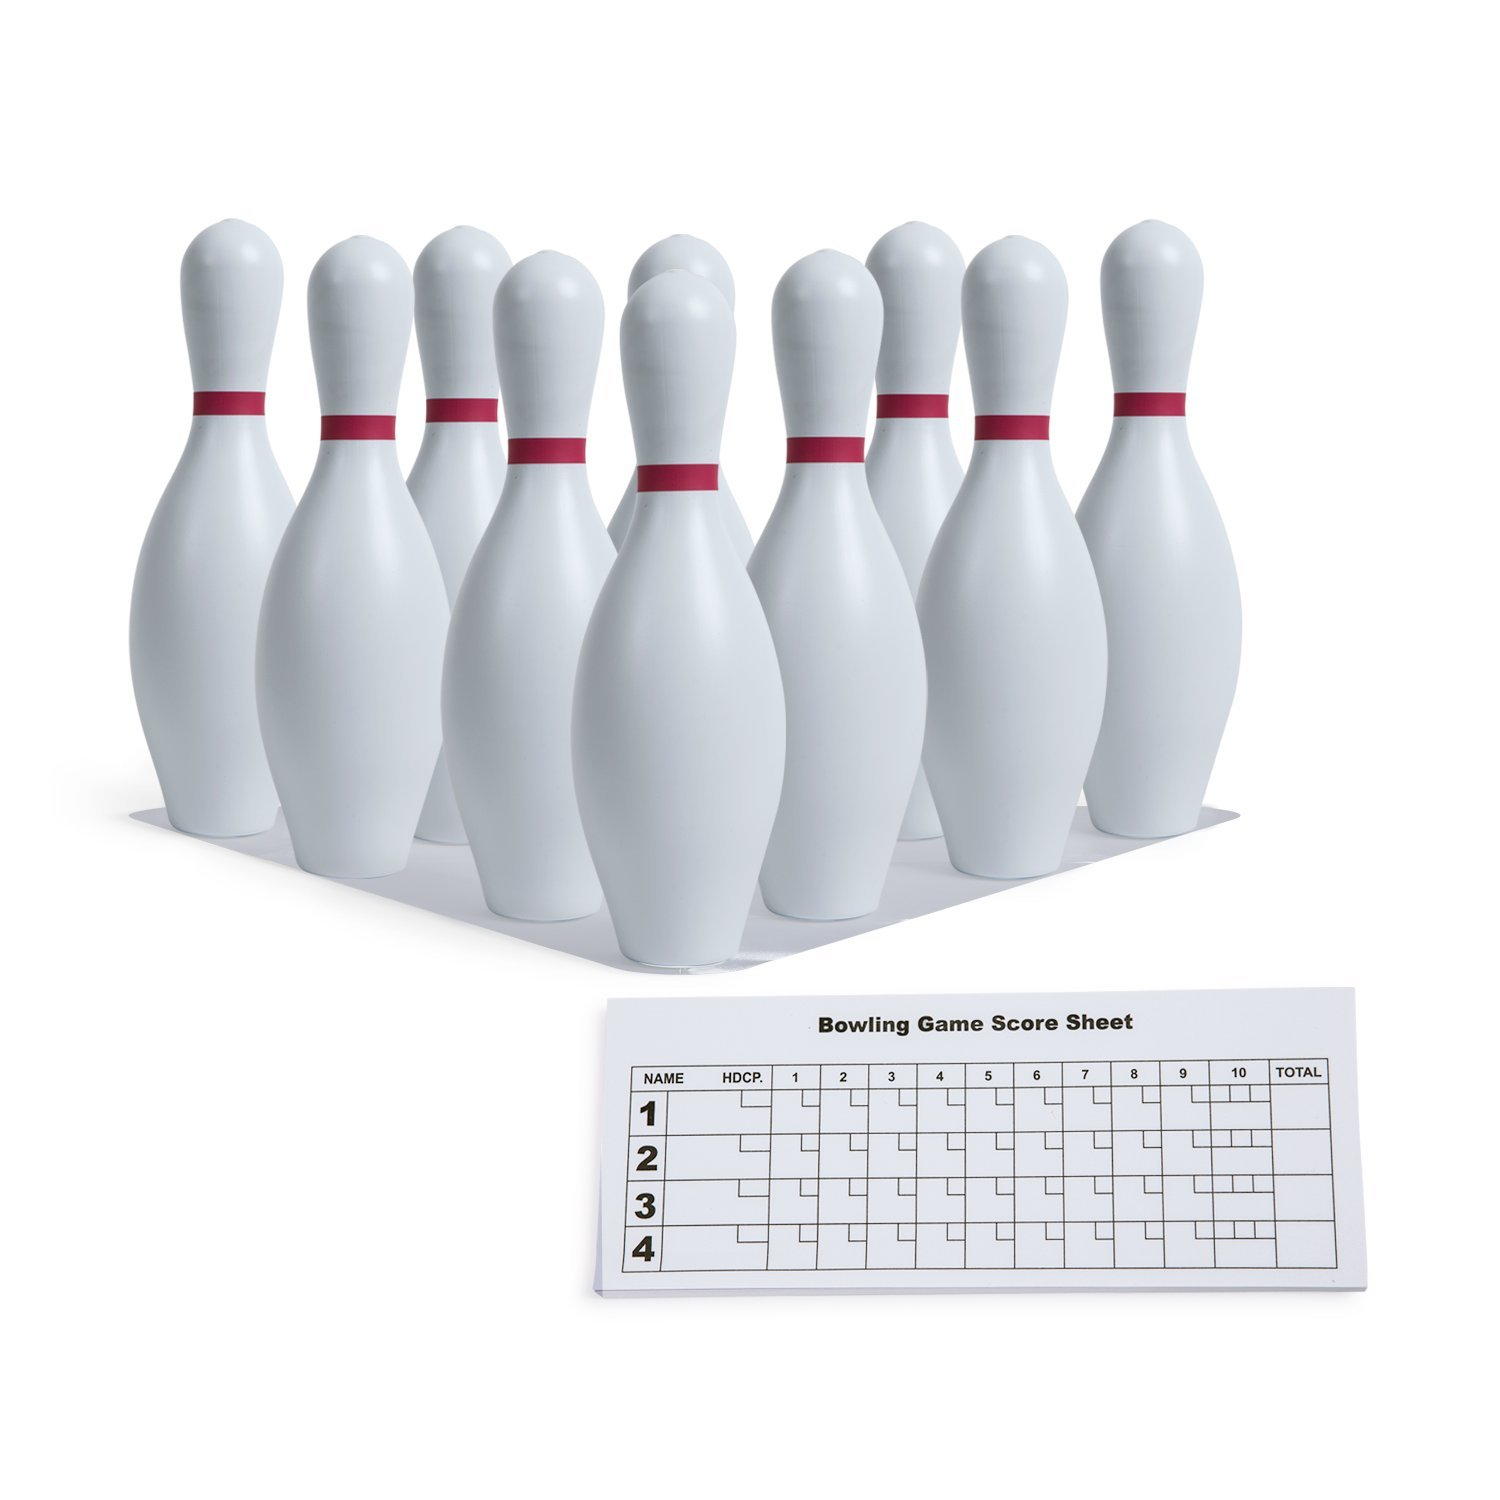 Champion Sports Plastic Bowling Pins: Set for Training & Kids Games by Champion Sports